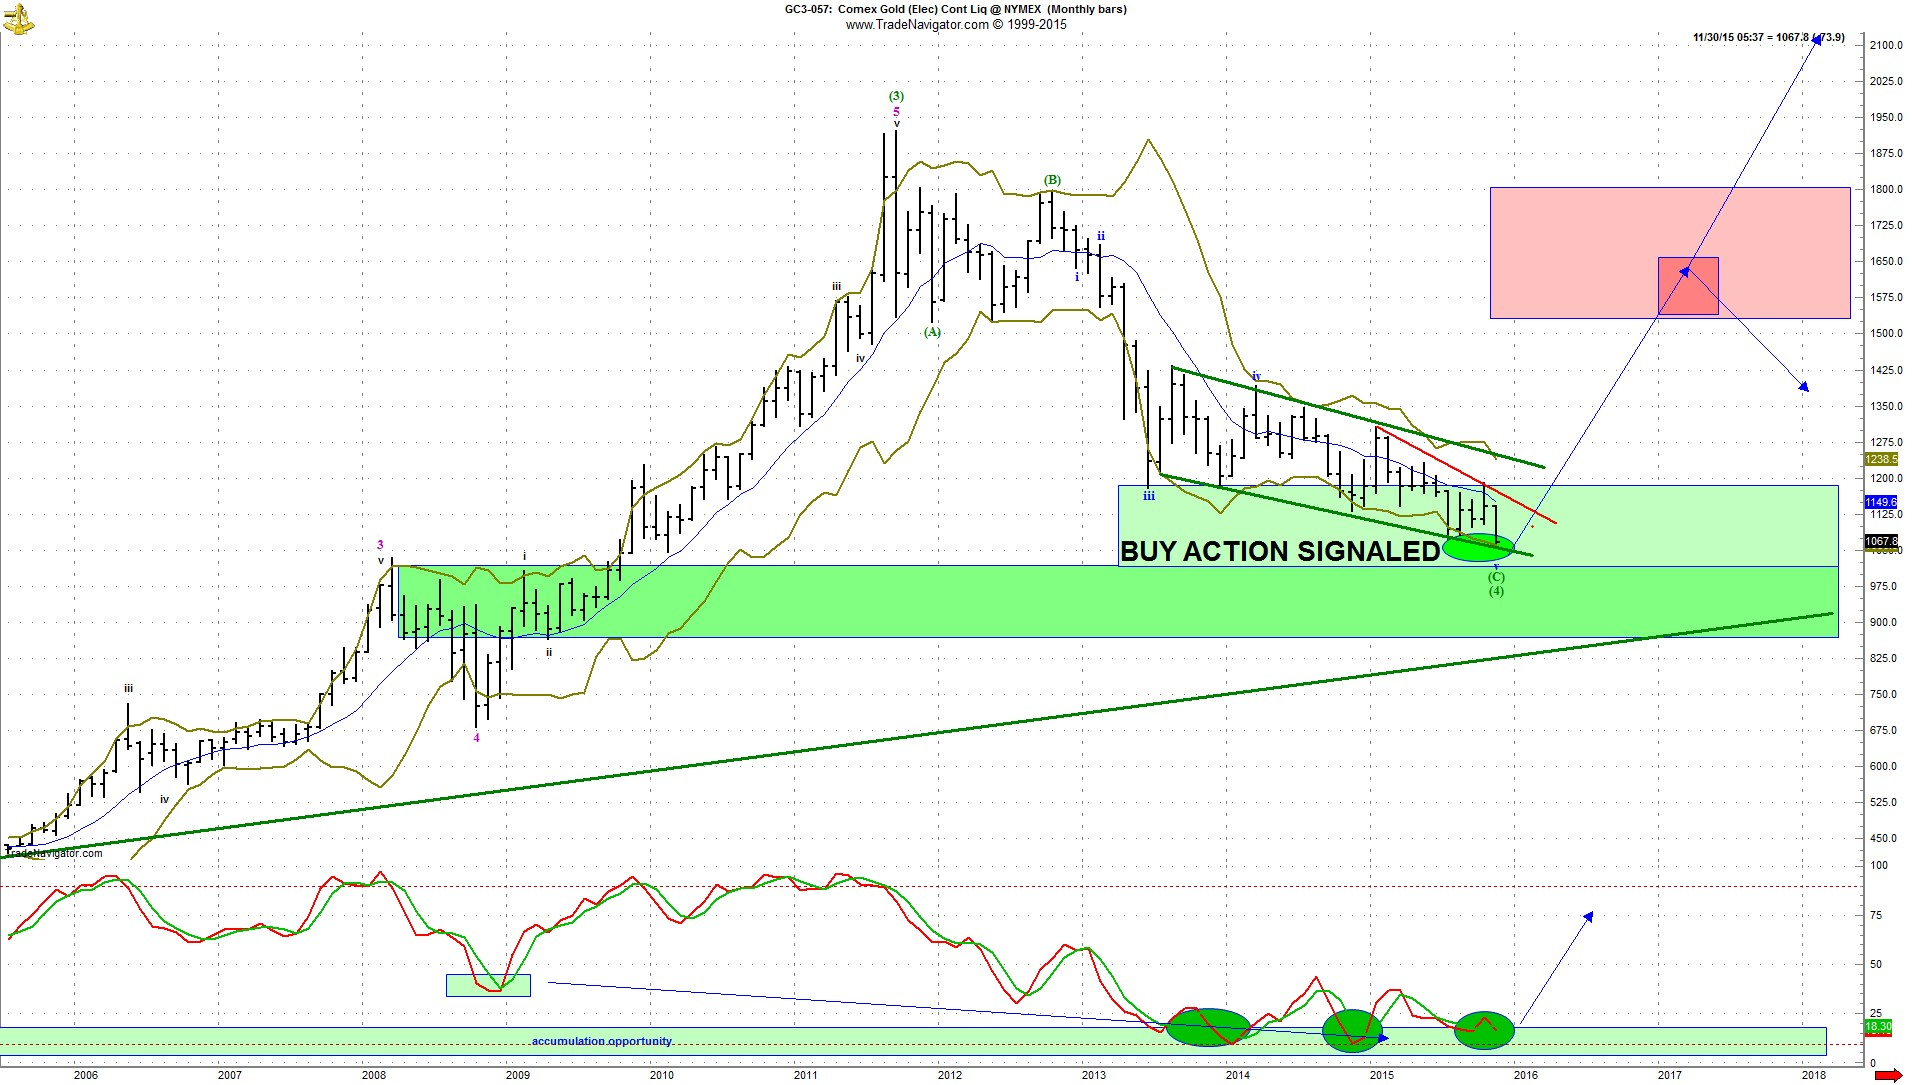 How to buy gold now - Next Notice That Price Has Fallen All The Way Into The Lower End Of The Upper Green Box Lighter Green Zone Noted By Buy Action Signaled And Into The